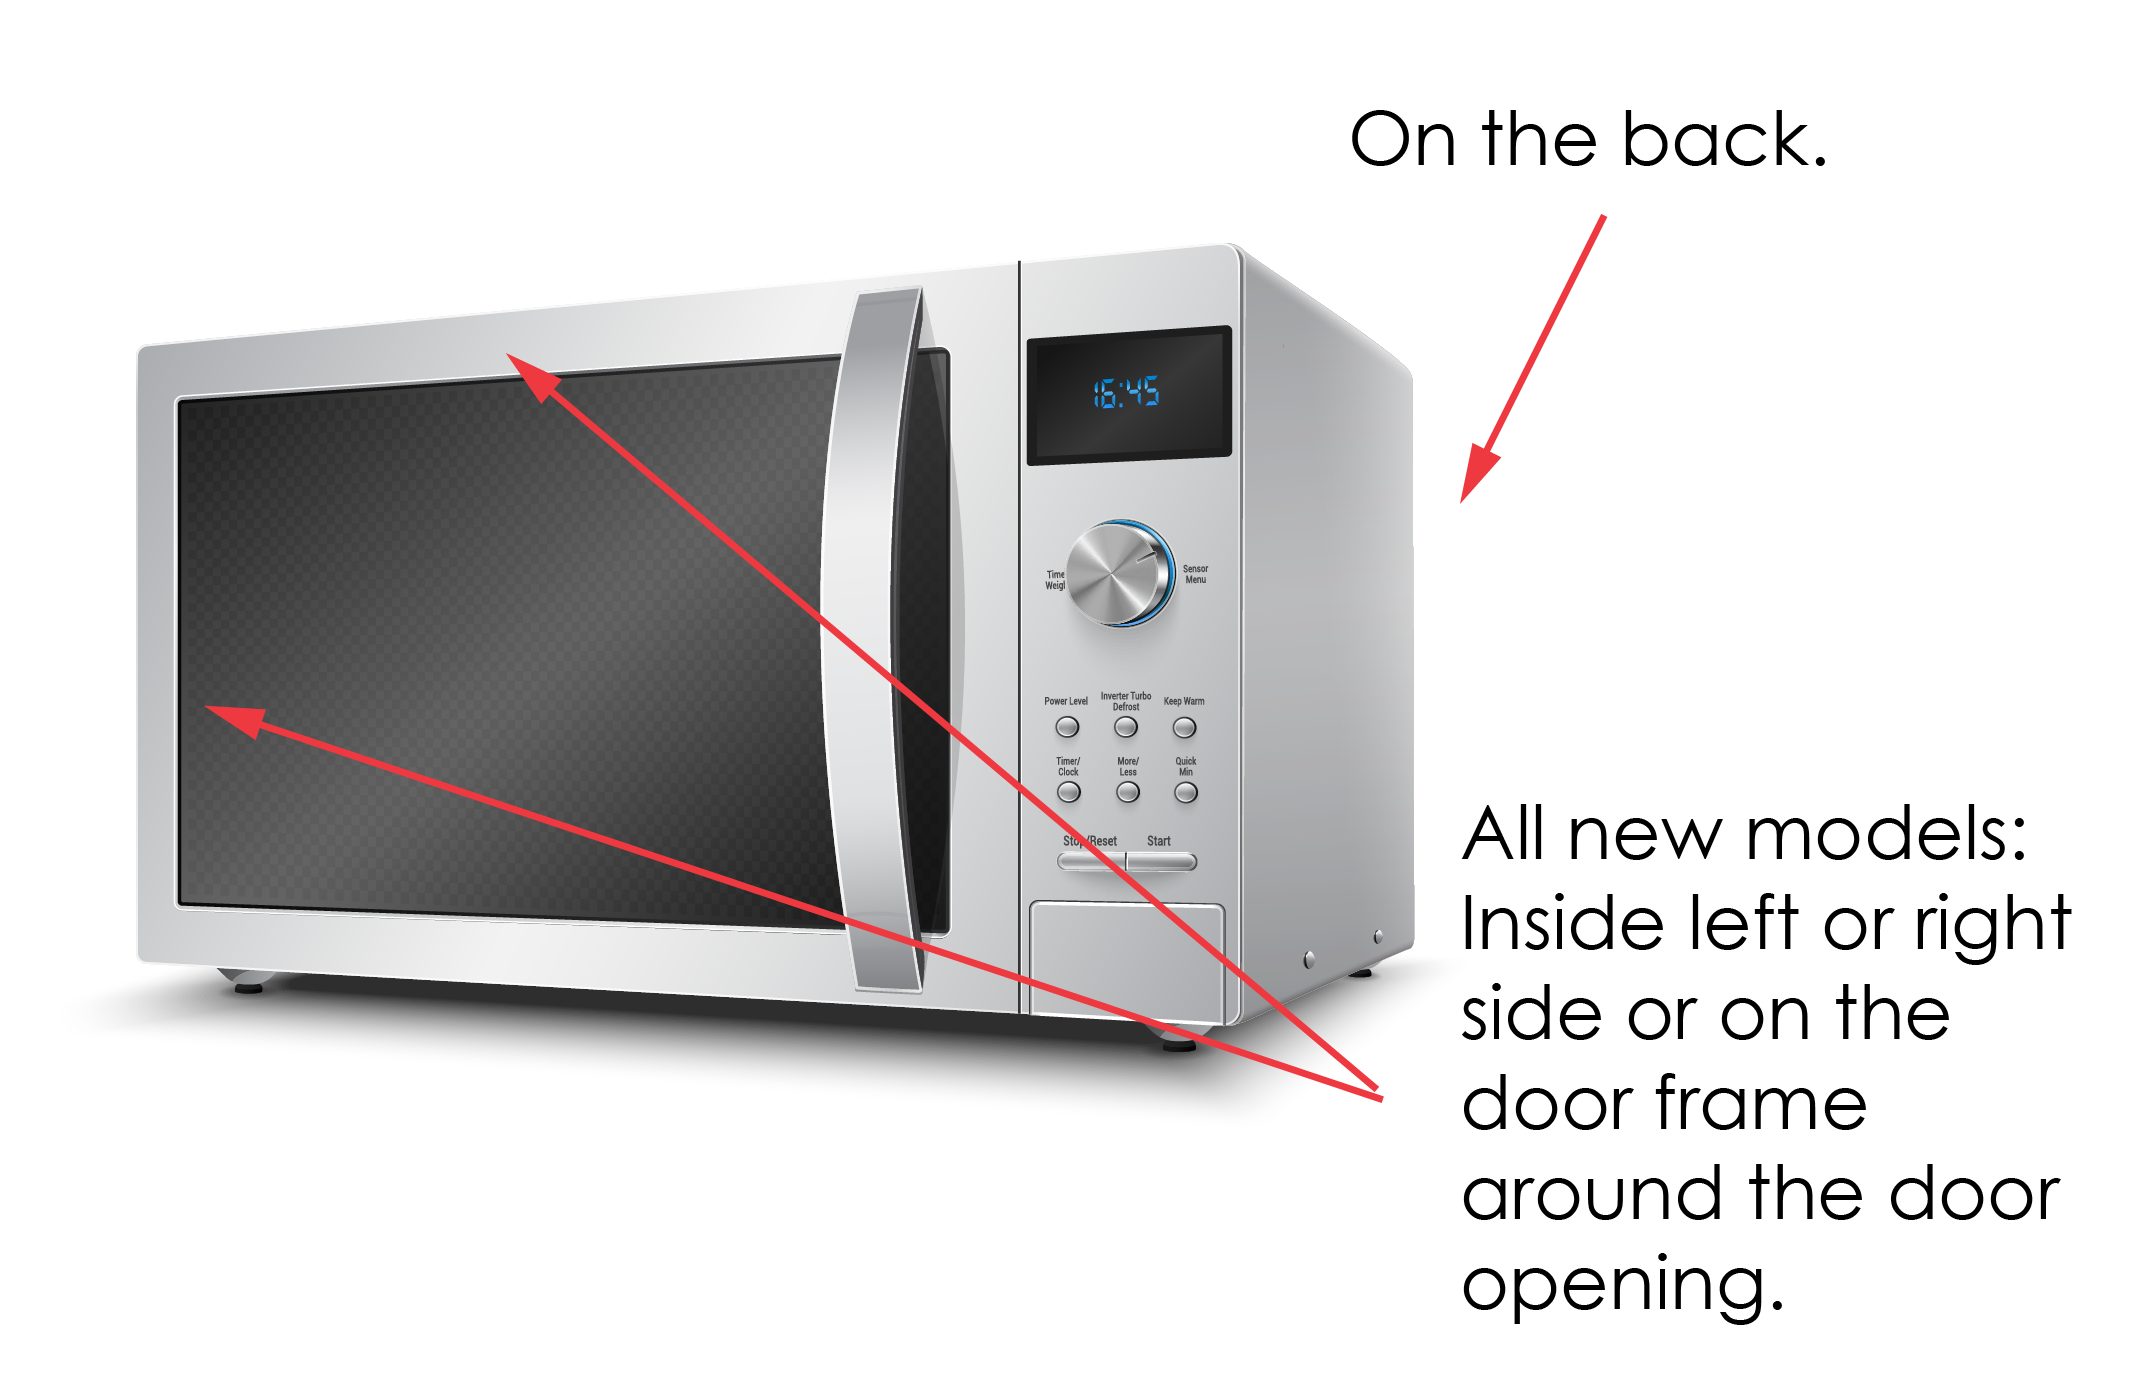 Where To Find Appliance Model Serial Number Microwave